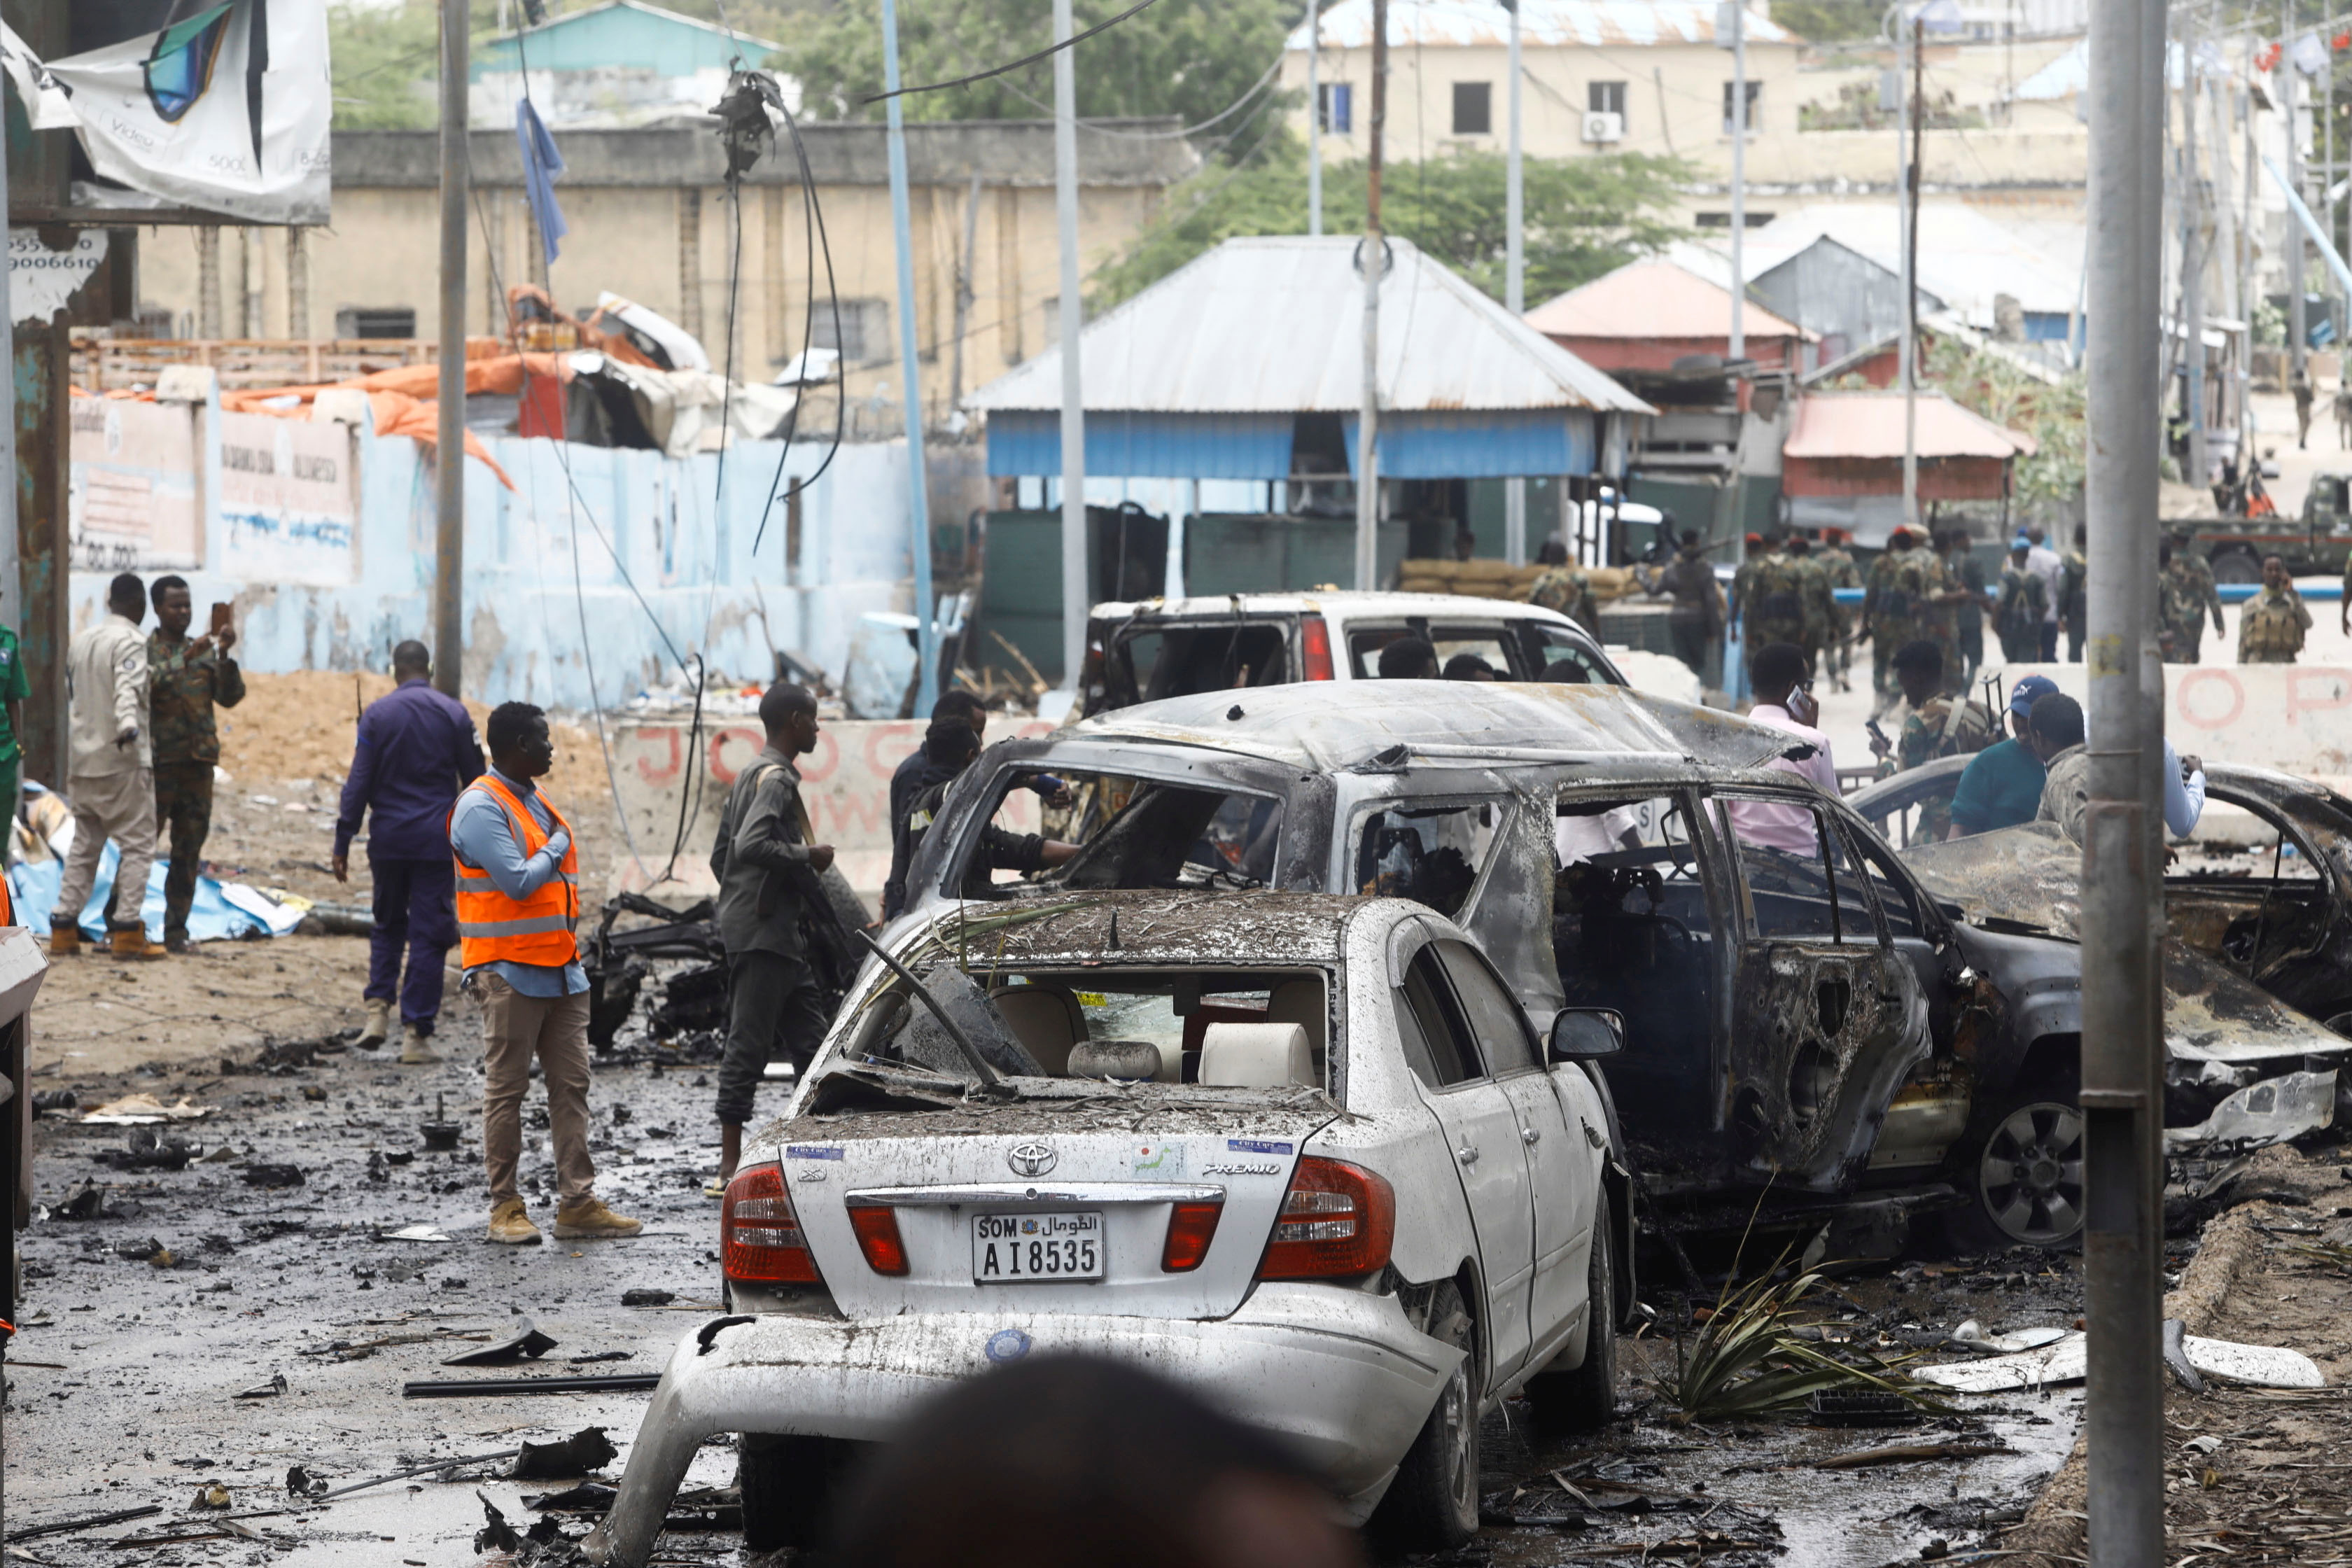 Suicide Car Bomb Targeting Convoy in Somali capital kills at least 8 -official